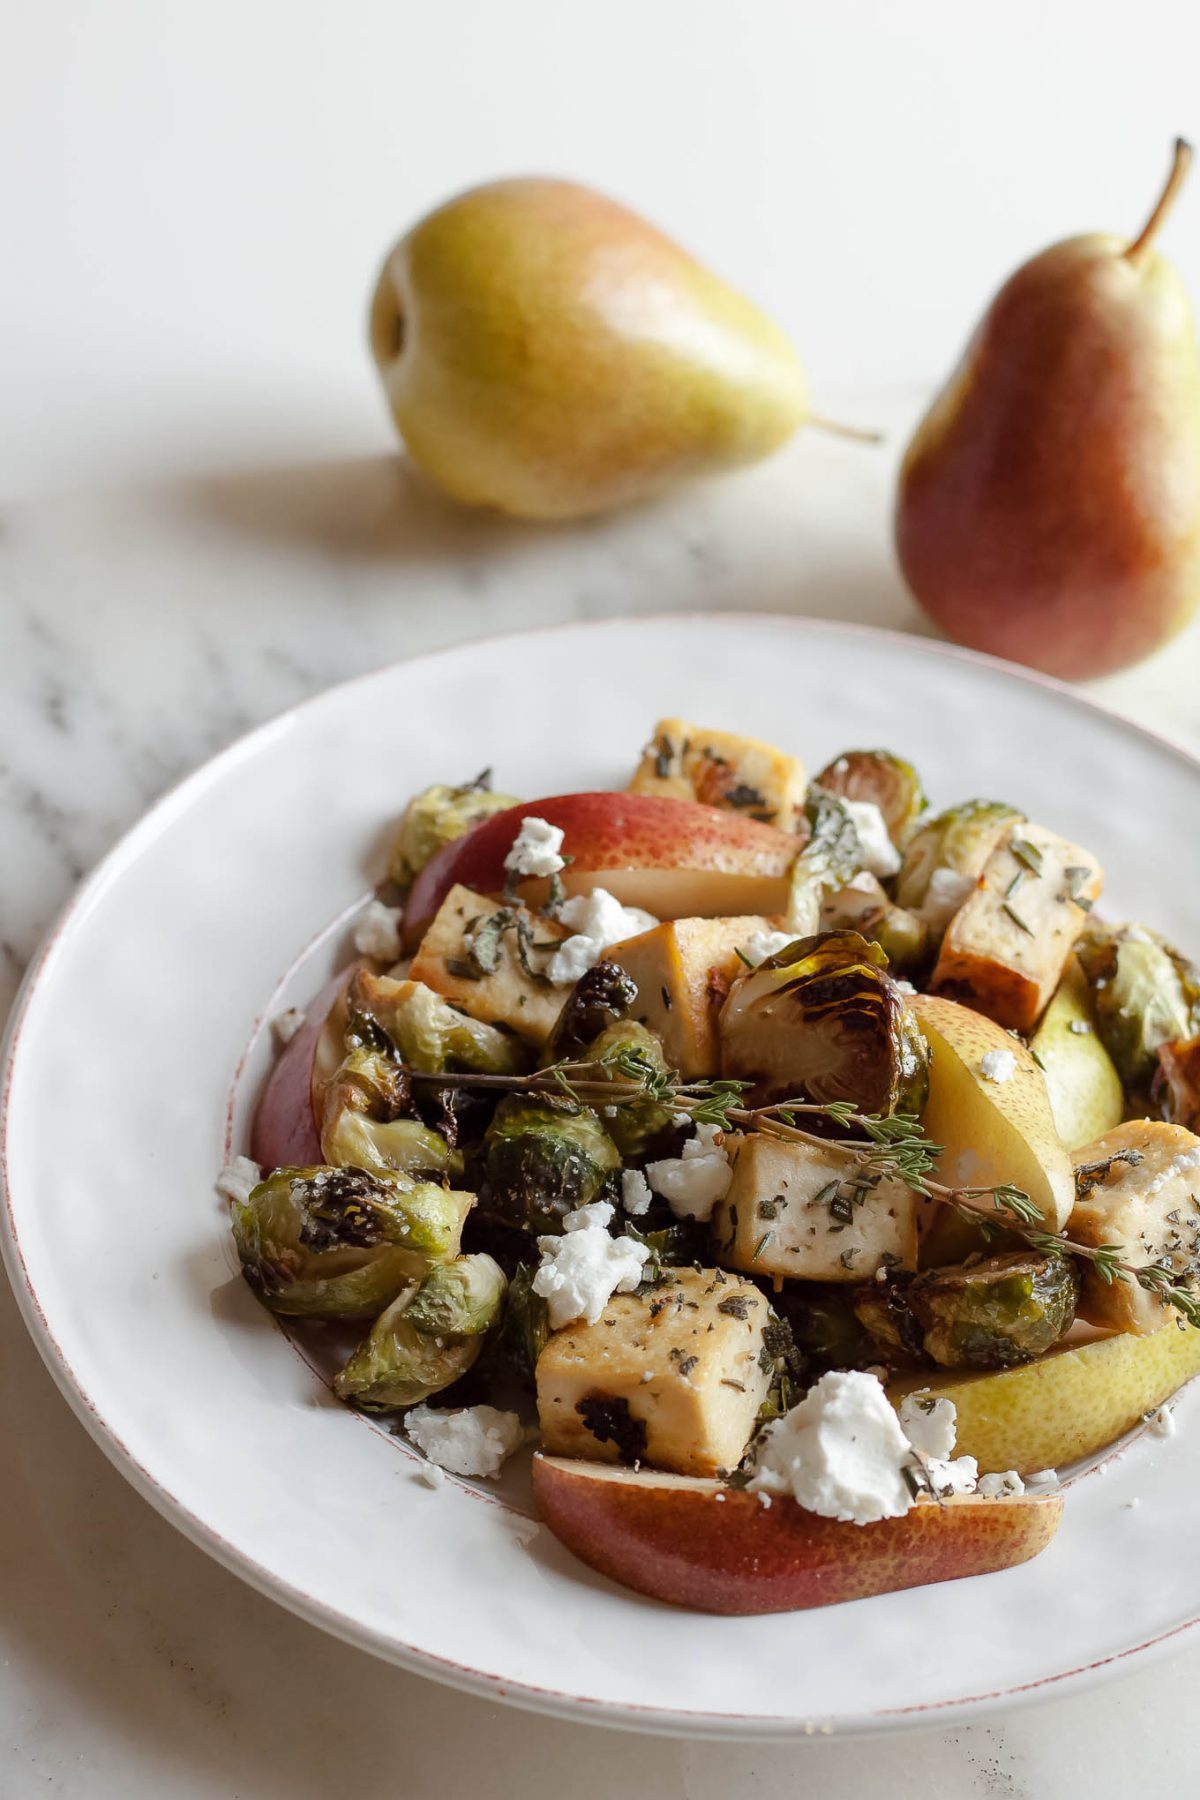 Rosemary Sage Tofu with Roasted Brussels Sprouts, Pear, and Goat Cheese - This healthy vegetarian salad recipe is perfect for fall and any holiday table!